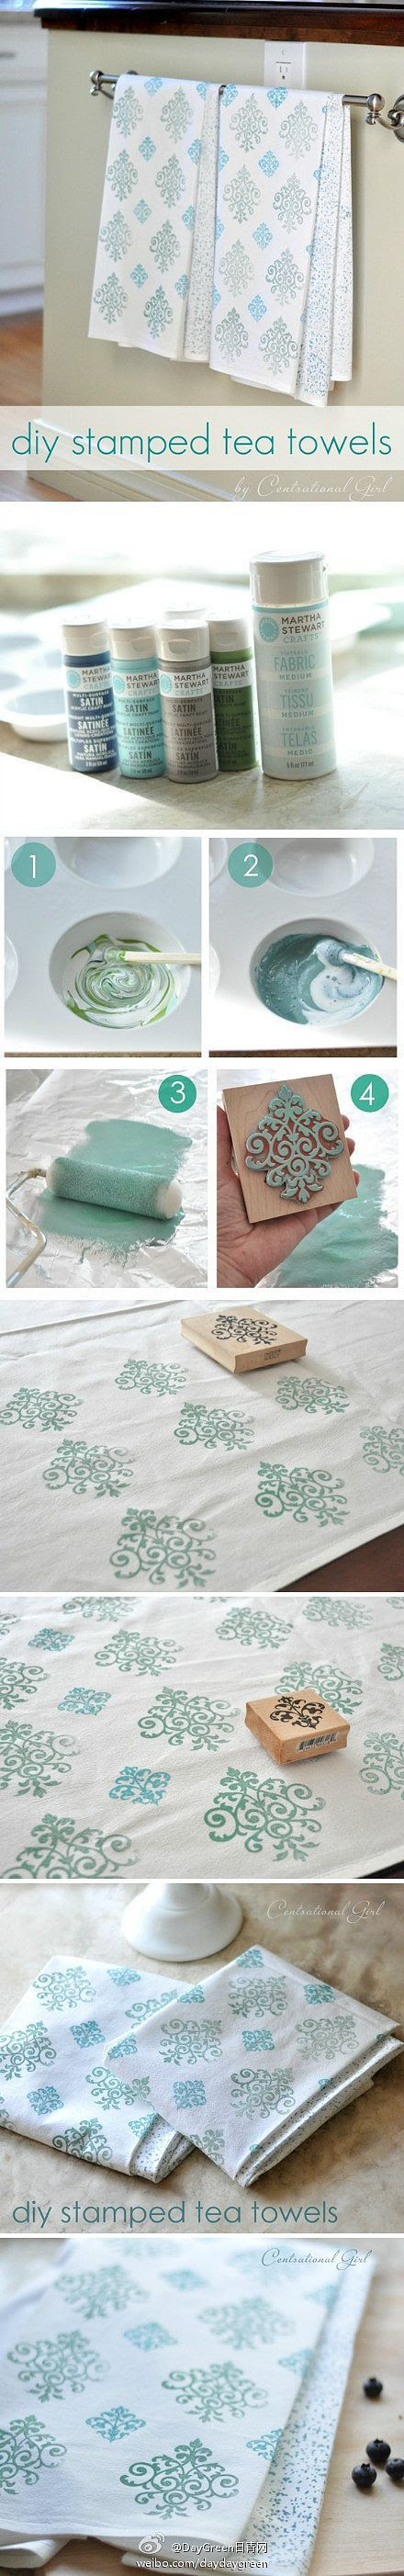 This is a great idea for curtains, towels, rugs and more. Hand stamped instructions.